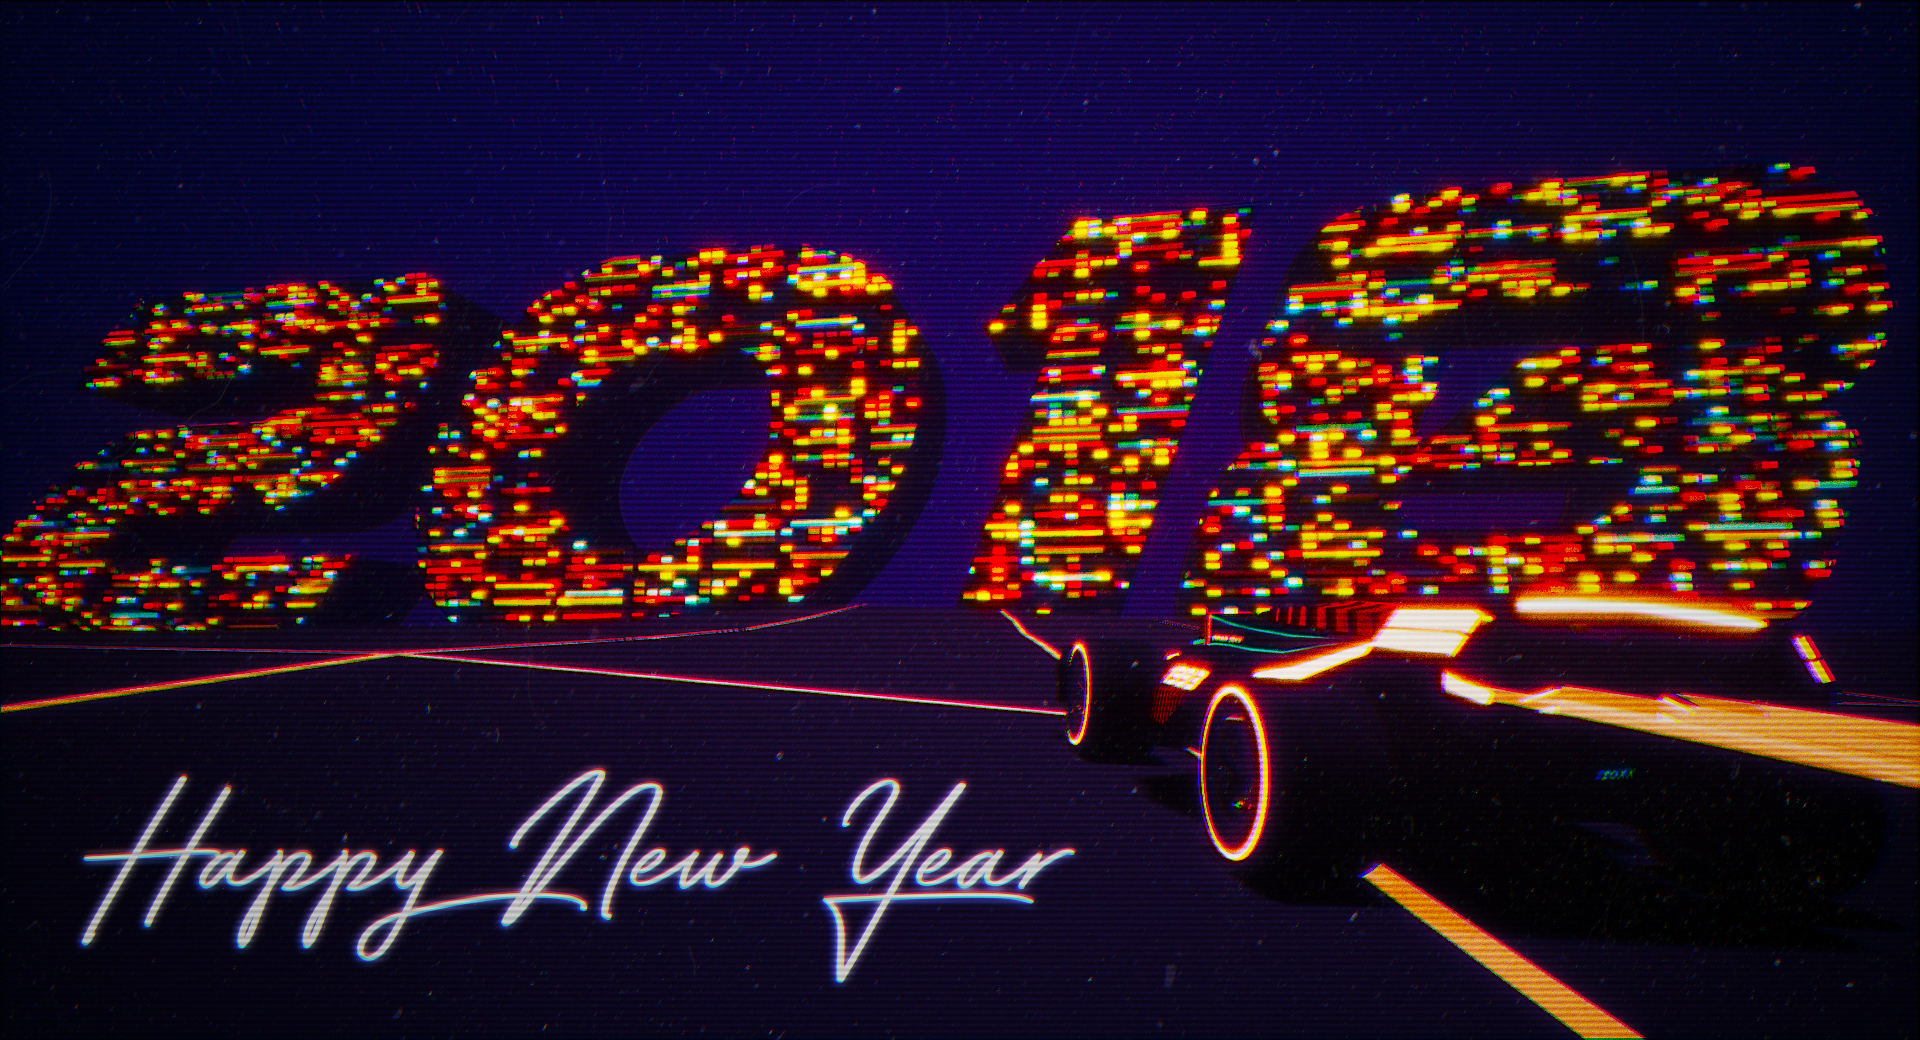 i wish you a happy new year 2018 a year filled with ultra saturated colors and retro synths under a night sky certainly